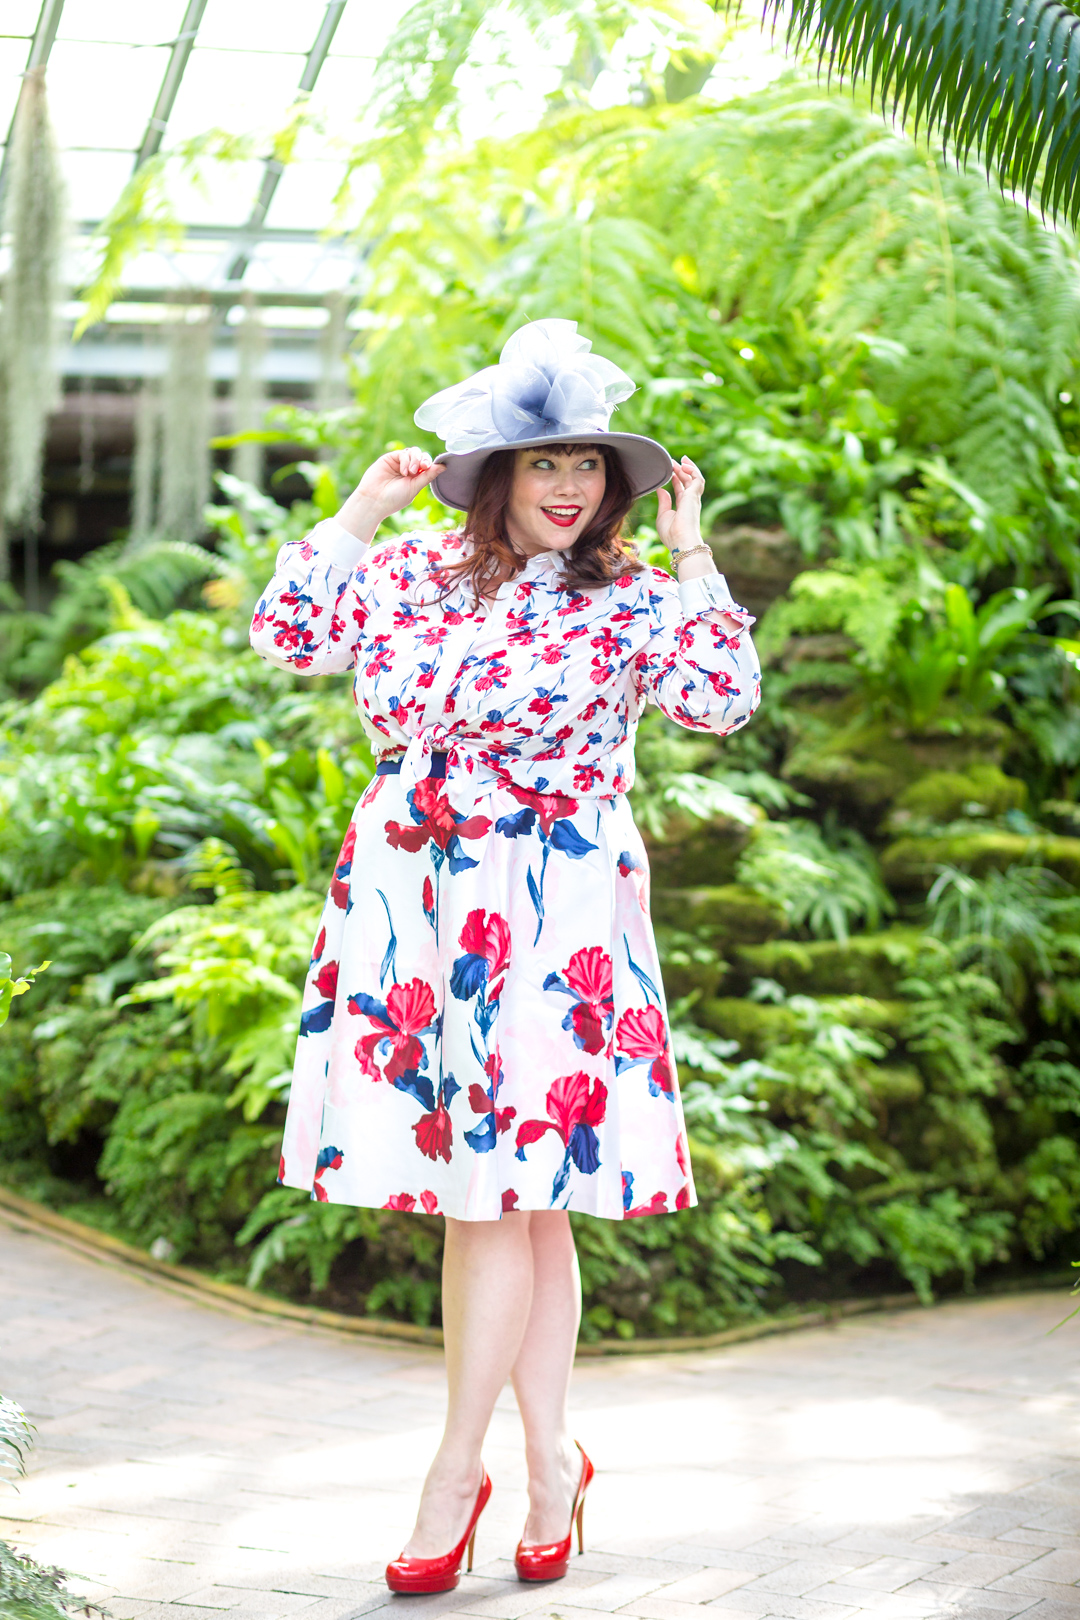 Spring Fashion Flower Power From Prabal Gurung X Lane Bryant Collection